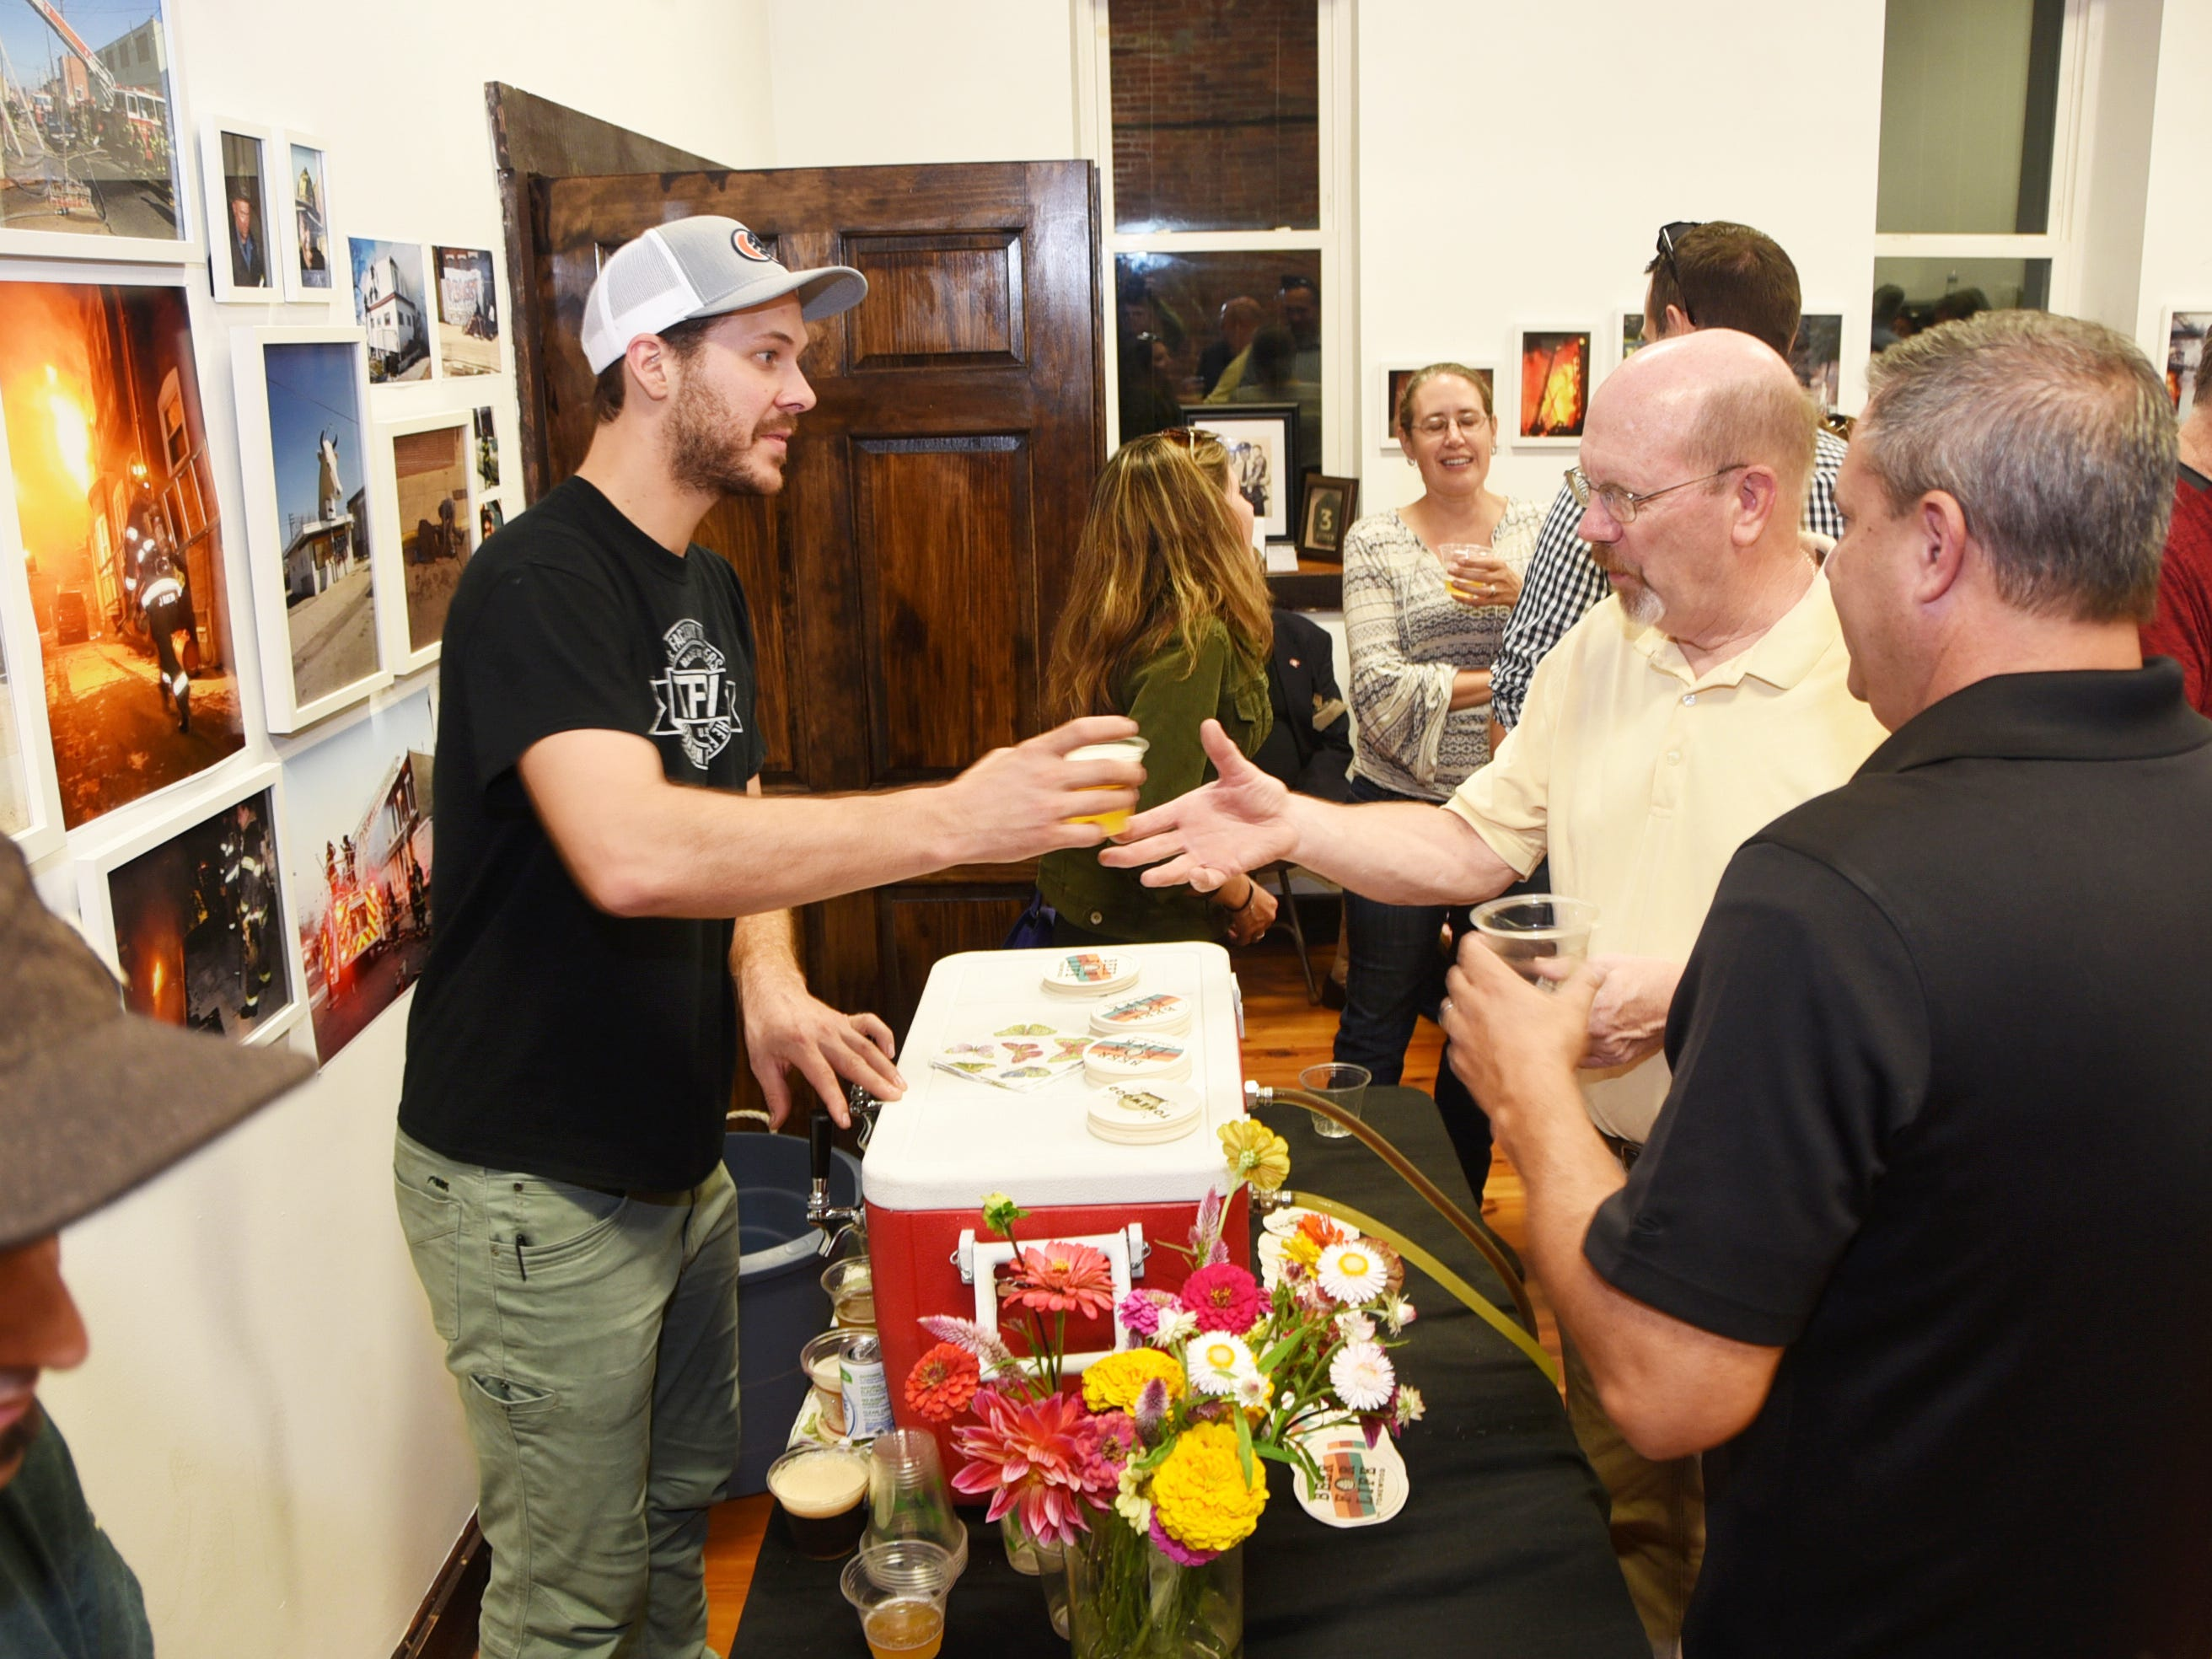 Eli Facchinei of Tonewood Brewing serves beer during the #WasteNot for CFET event at the FireWorks Gallery in South Camden on Saturday, September 29, 2018.  The Courier-Post partnered with the Farm & Fisherman Tavern in Cherry Hill and other community organizations to hold the event that offered a special tasting, farm tour and community conversation about reducing food waste.